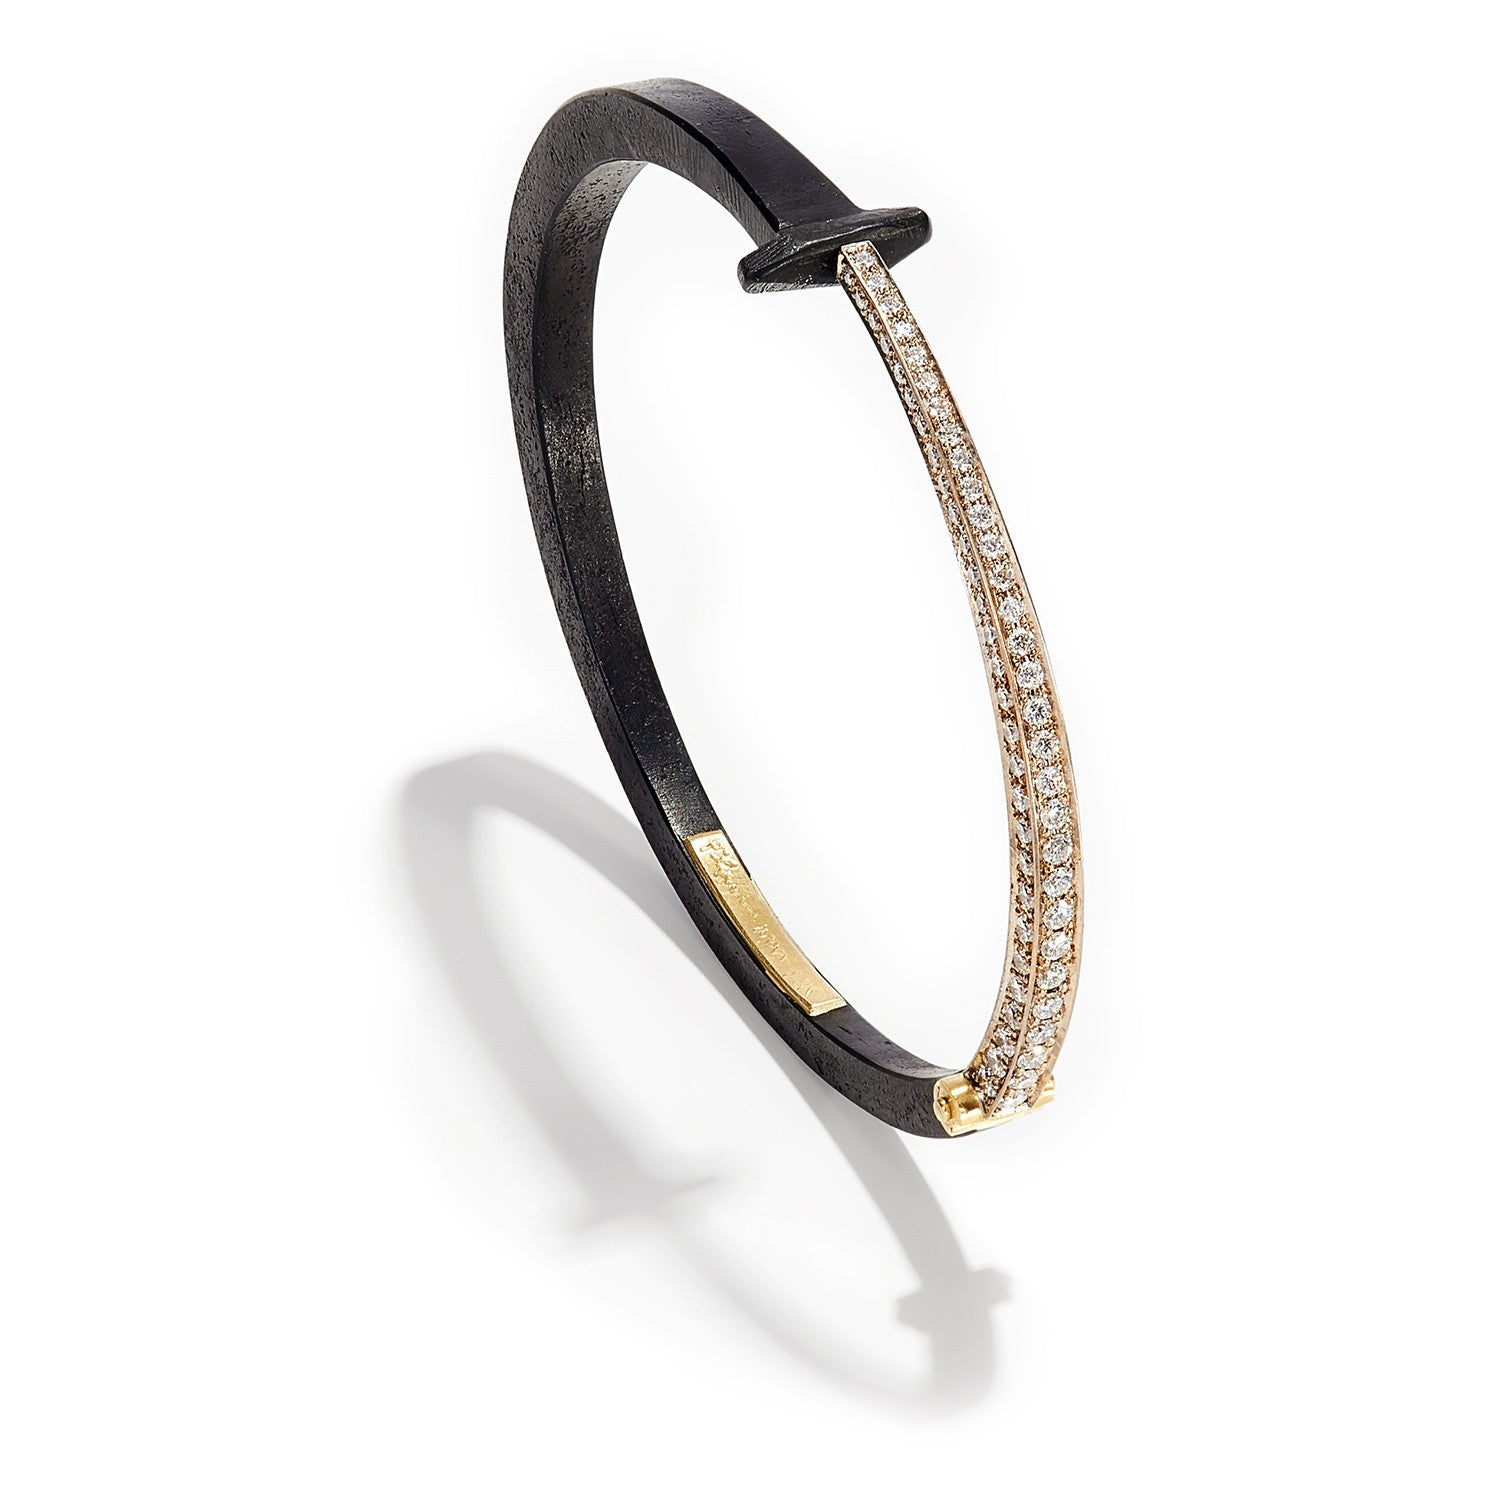 Pave Tail Nail Bracelet by Pat Flynn | bangle Bracelet Diamond Iron ...